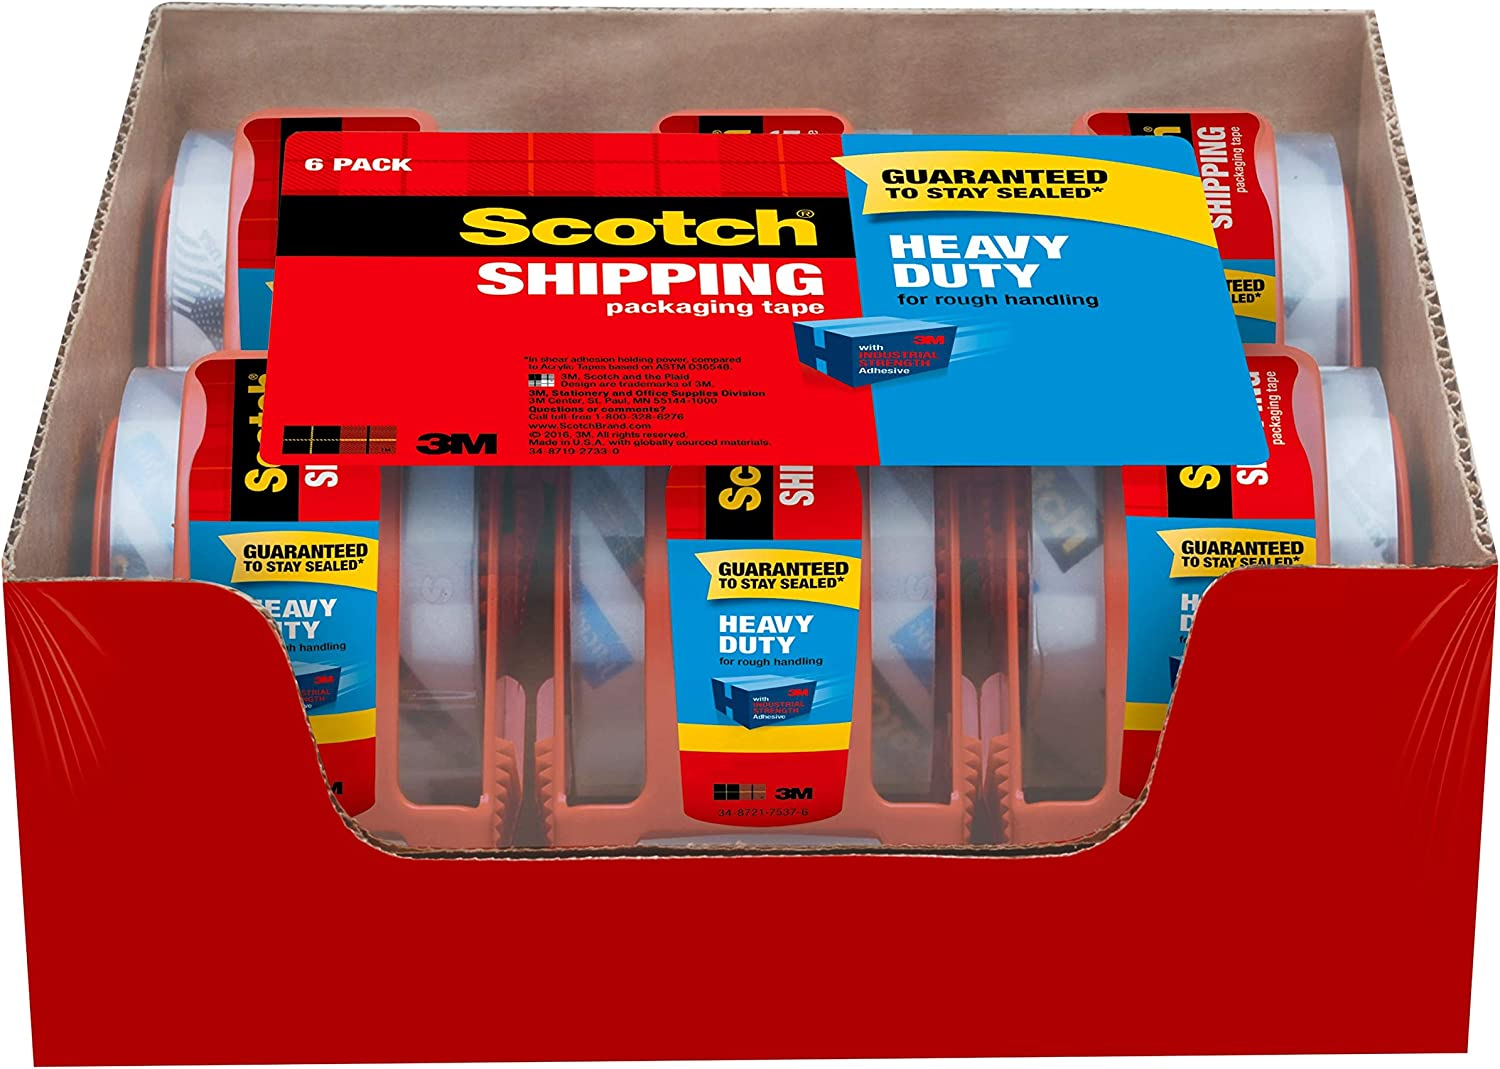 "Scotch Heavy Duty Shipping Packaging Tape, 6 Rolls with Dispenser, 1.88"" x 22.2 Yards, 1.5"" Core, Great for Packing, Shipping & Moving, Clear (142-6) : Packing Tape : Office Products"